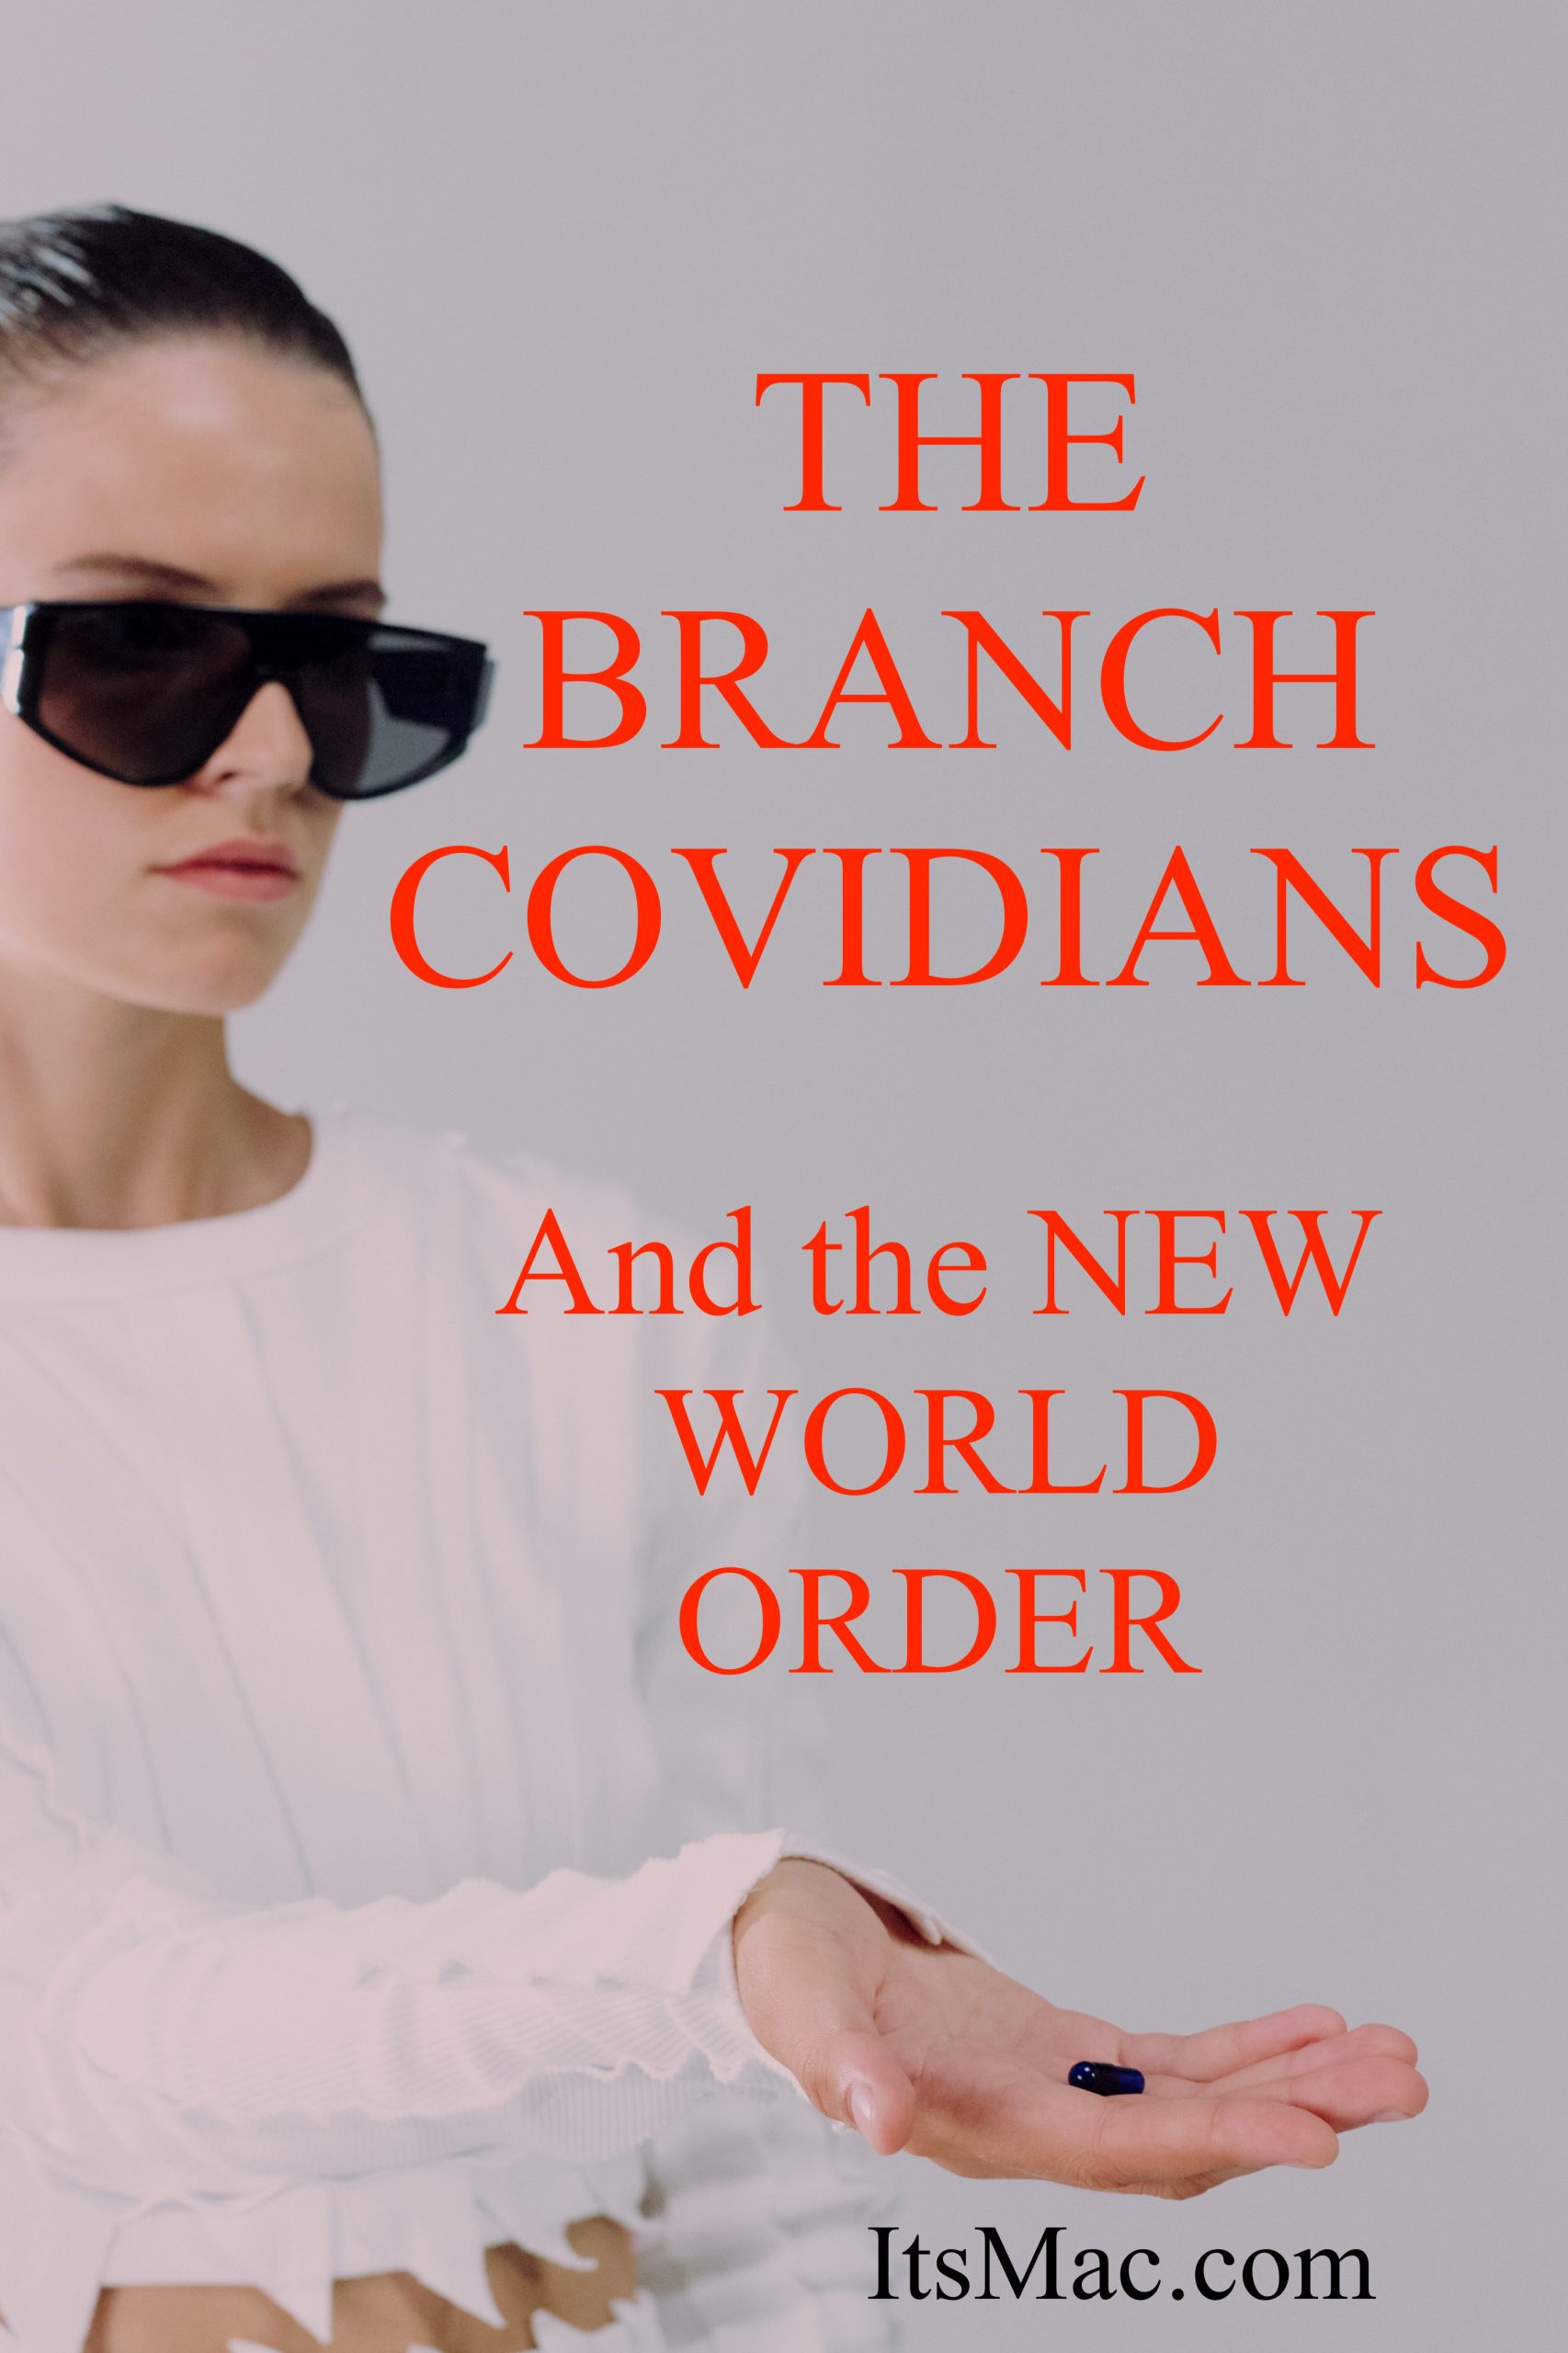 THE BRANCH COVIDIANS!  THE COVID CULT HAS TAKEN OVER!